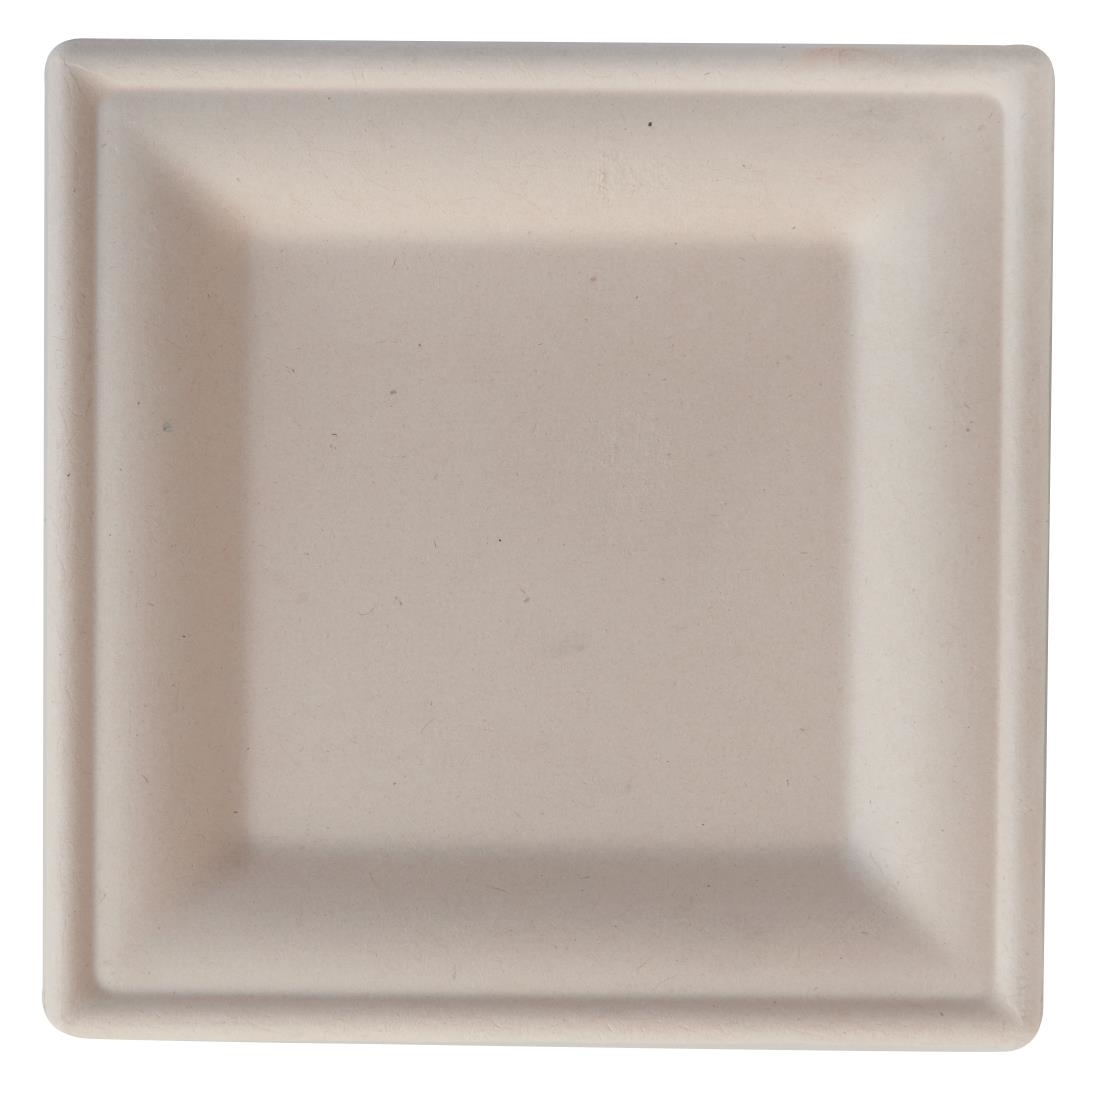 Image of eGreen Eco-Fibre Compostable Wheat Square Plates 200mm (Pack of 500) Pack of 500